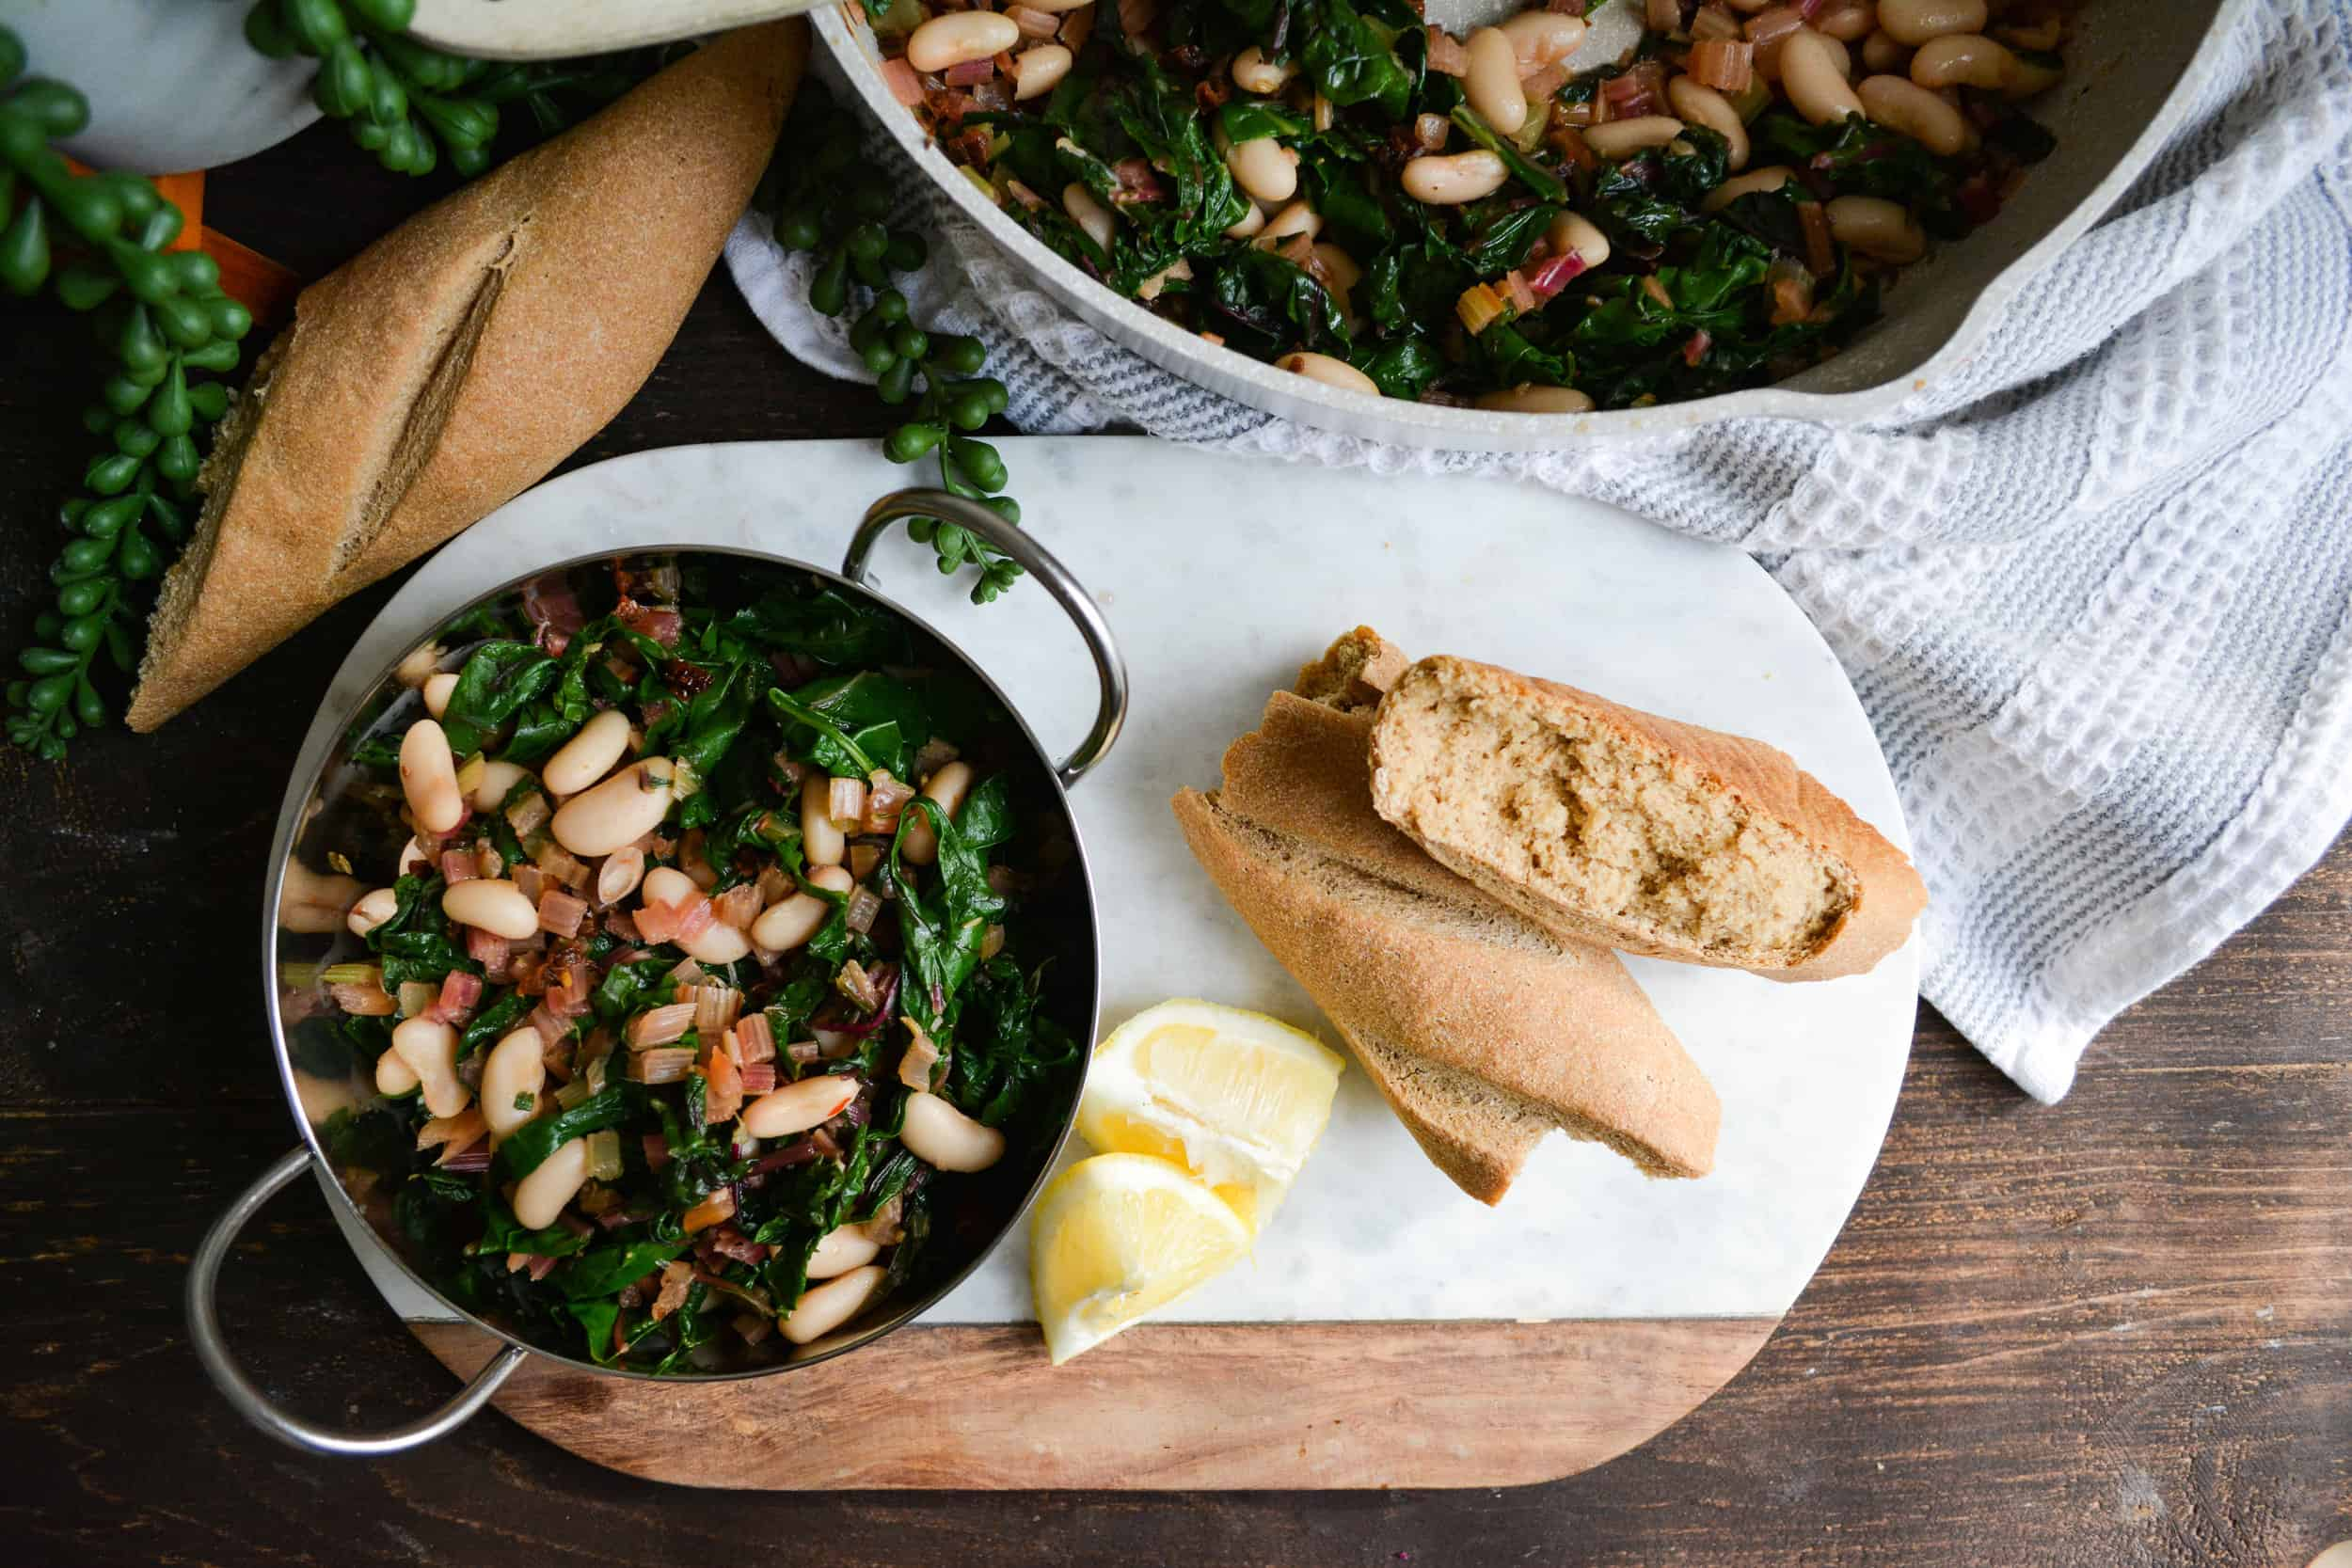 One Pan Meal: Garlicky Swiss Chard with White Beans